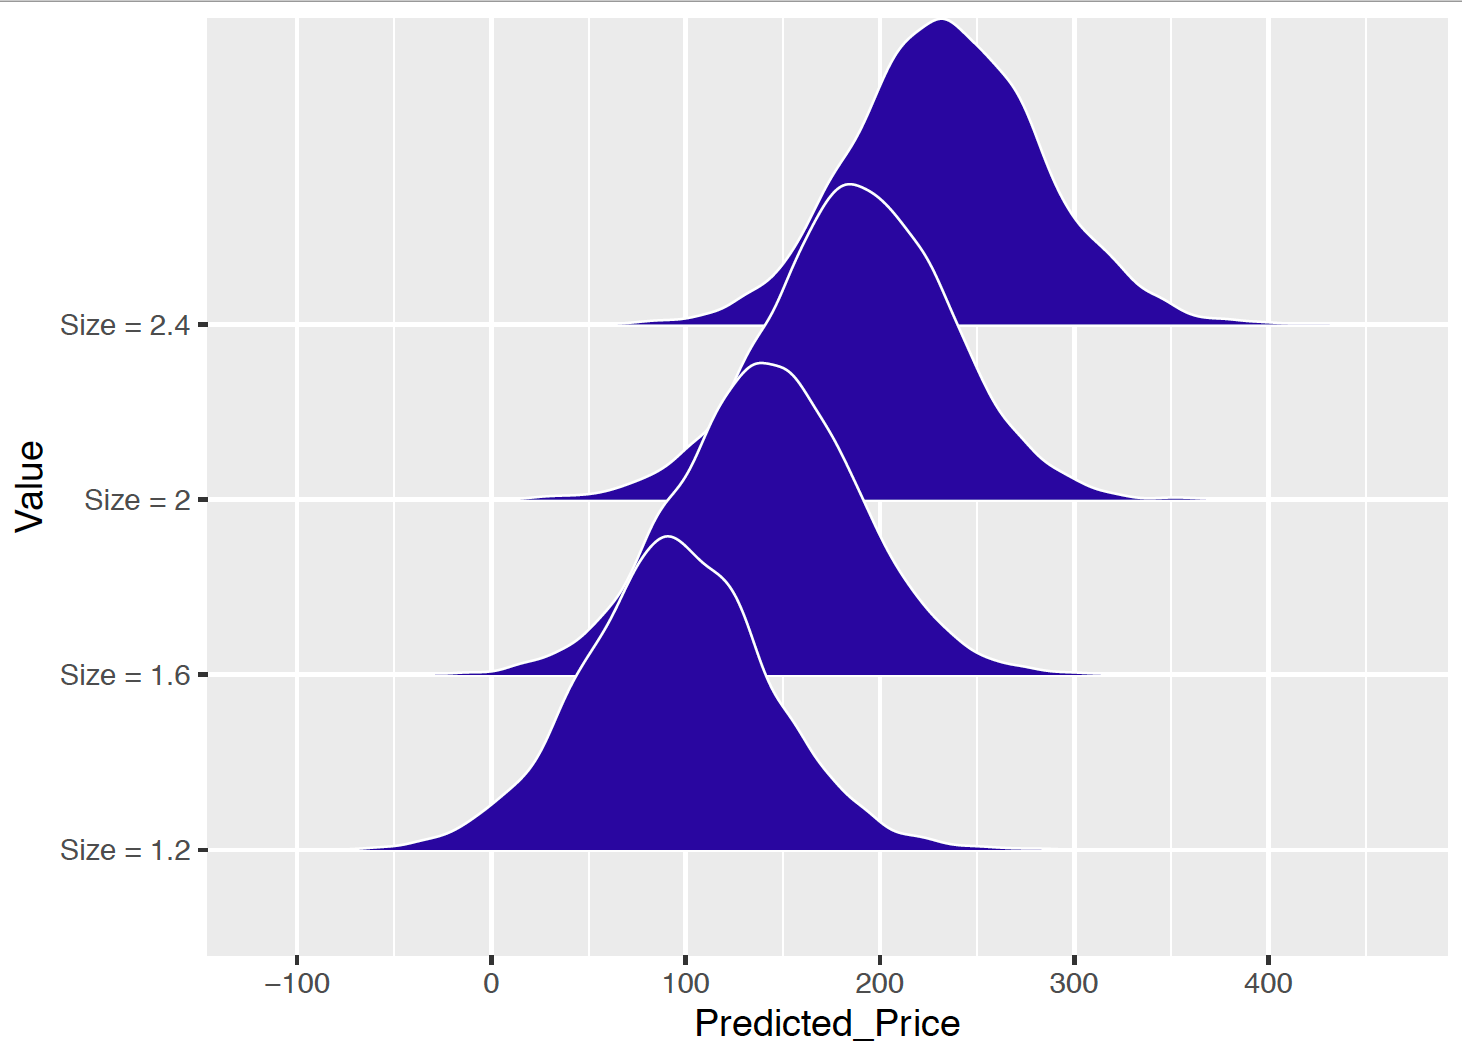 Density plots of the simulated draws of the predicted  house price for four different values of the house size.